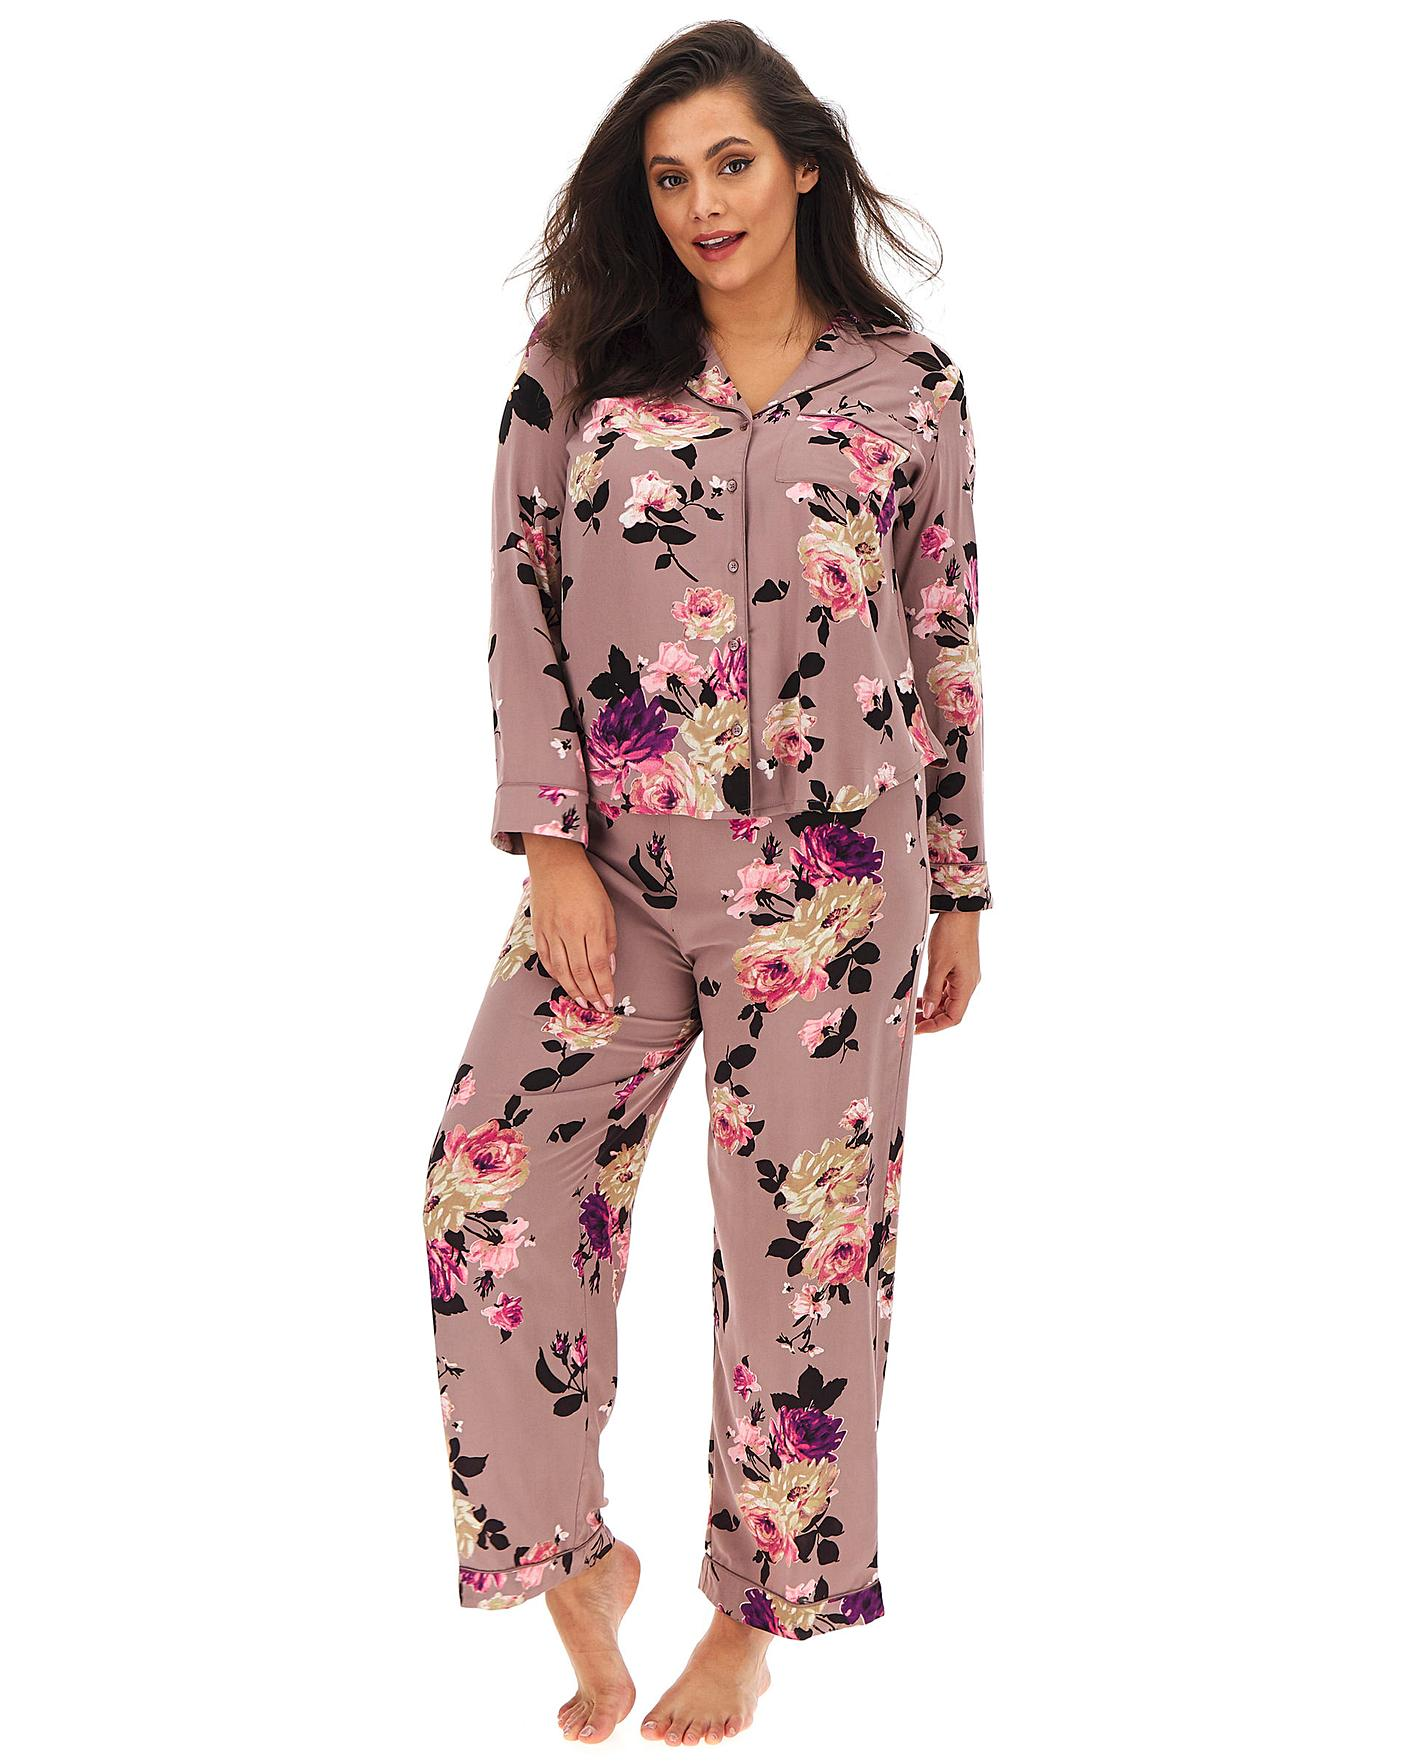 Oasis Lounge Long Sleeve Winter Rose PJ Shirt